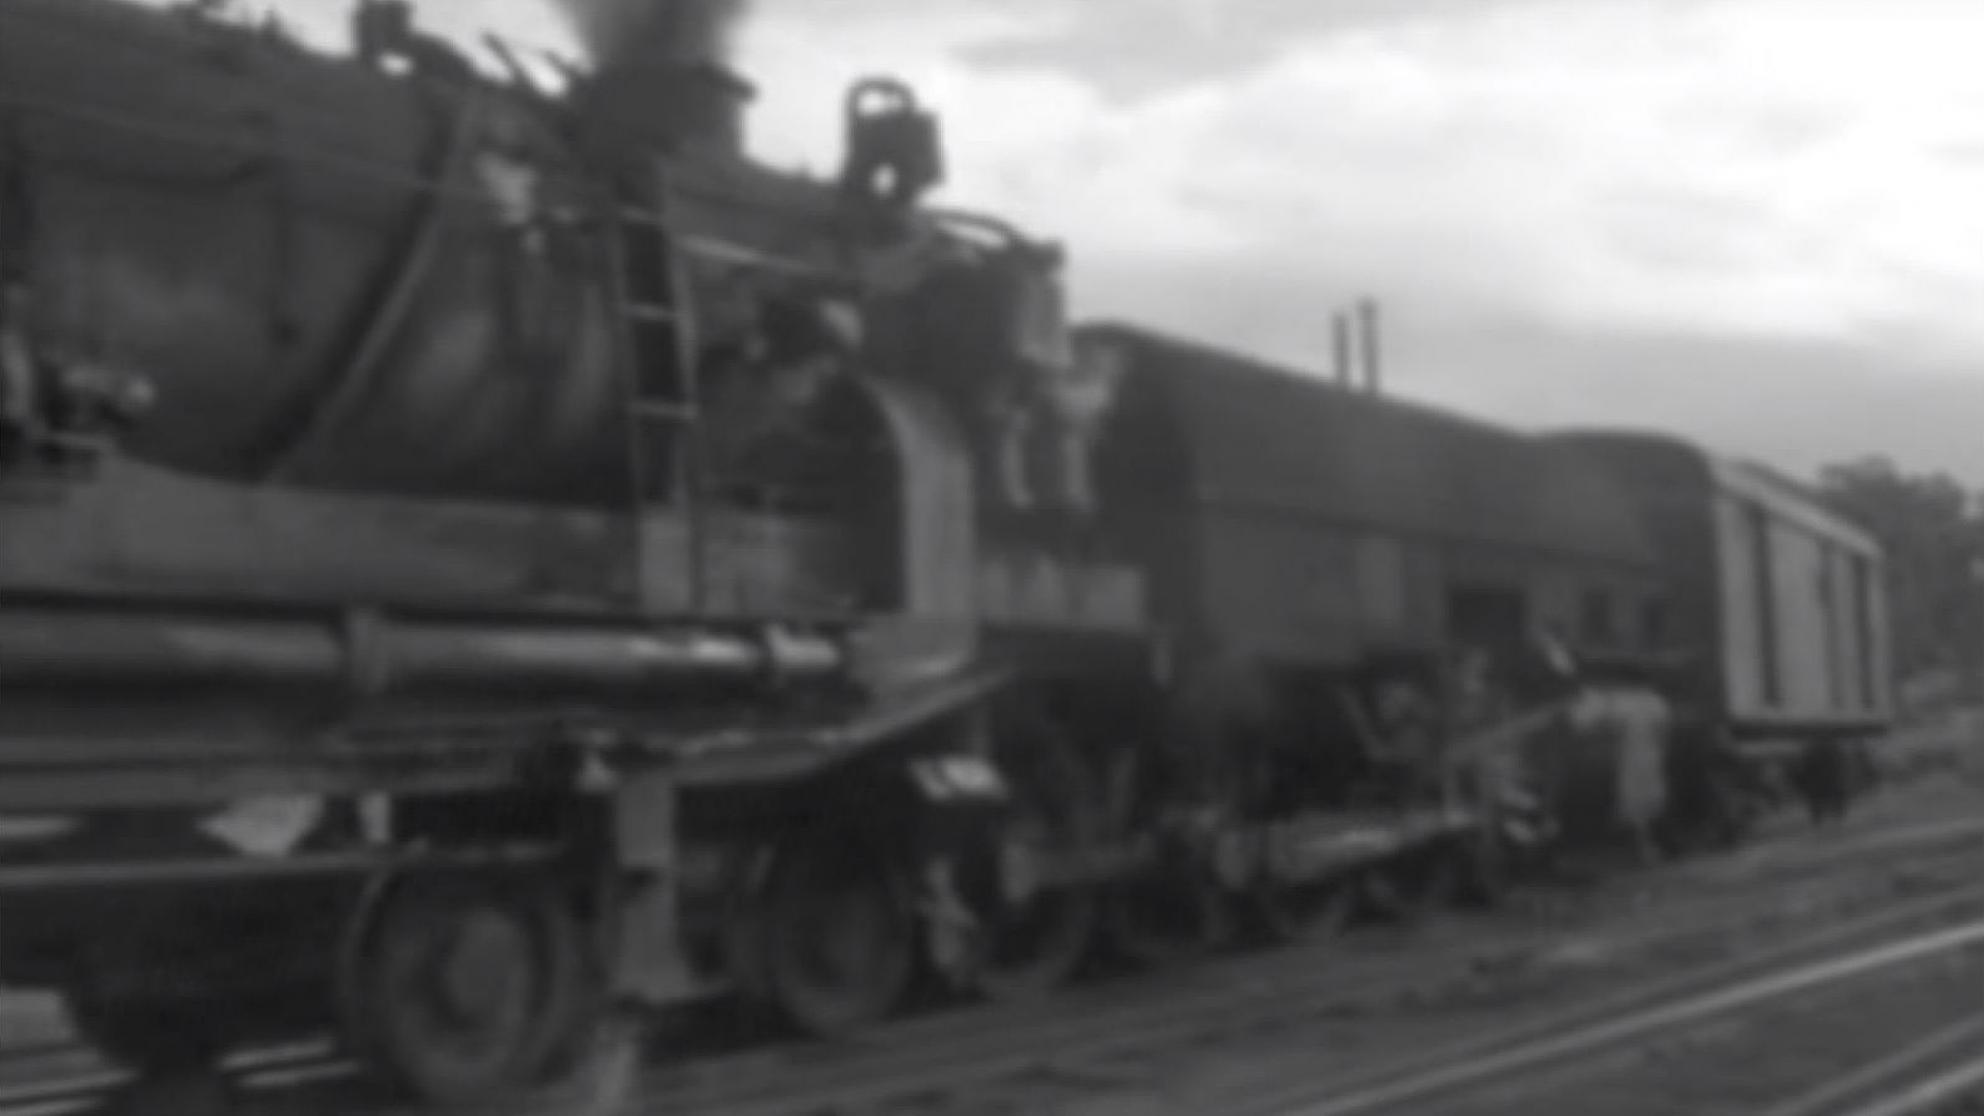 Screenshot of amateur black and white footage showing train passing in Newcastle, circa 1970s.